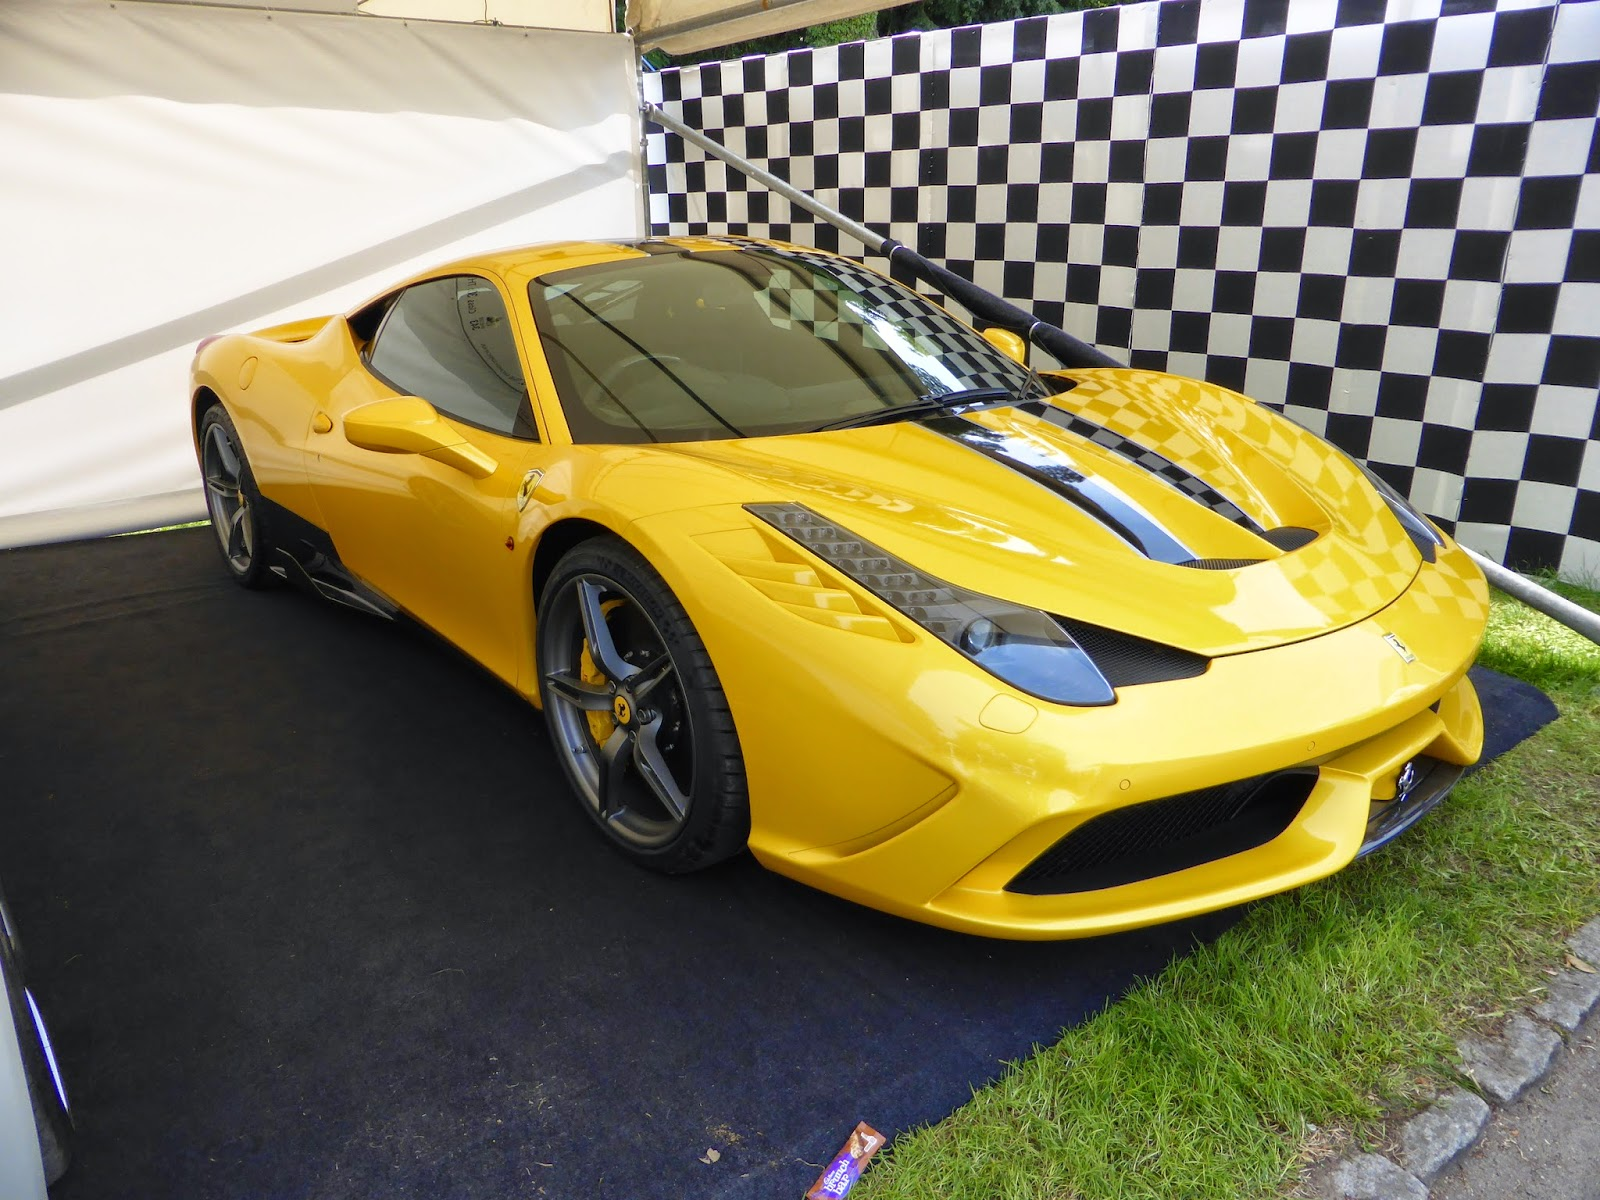 Ferrari 458 Italia in the supercar paddock